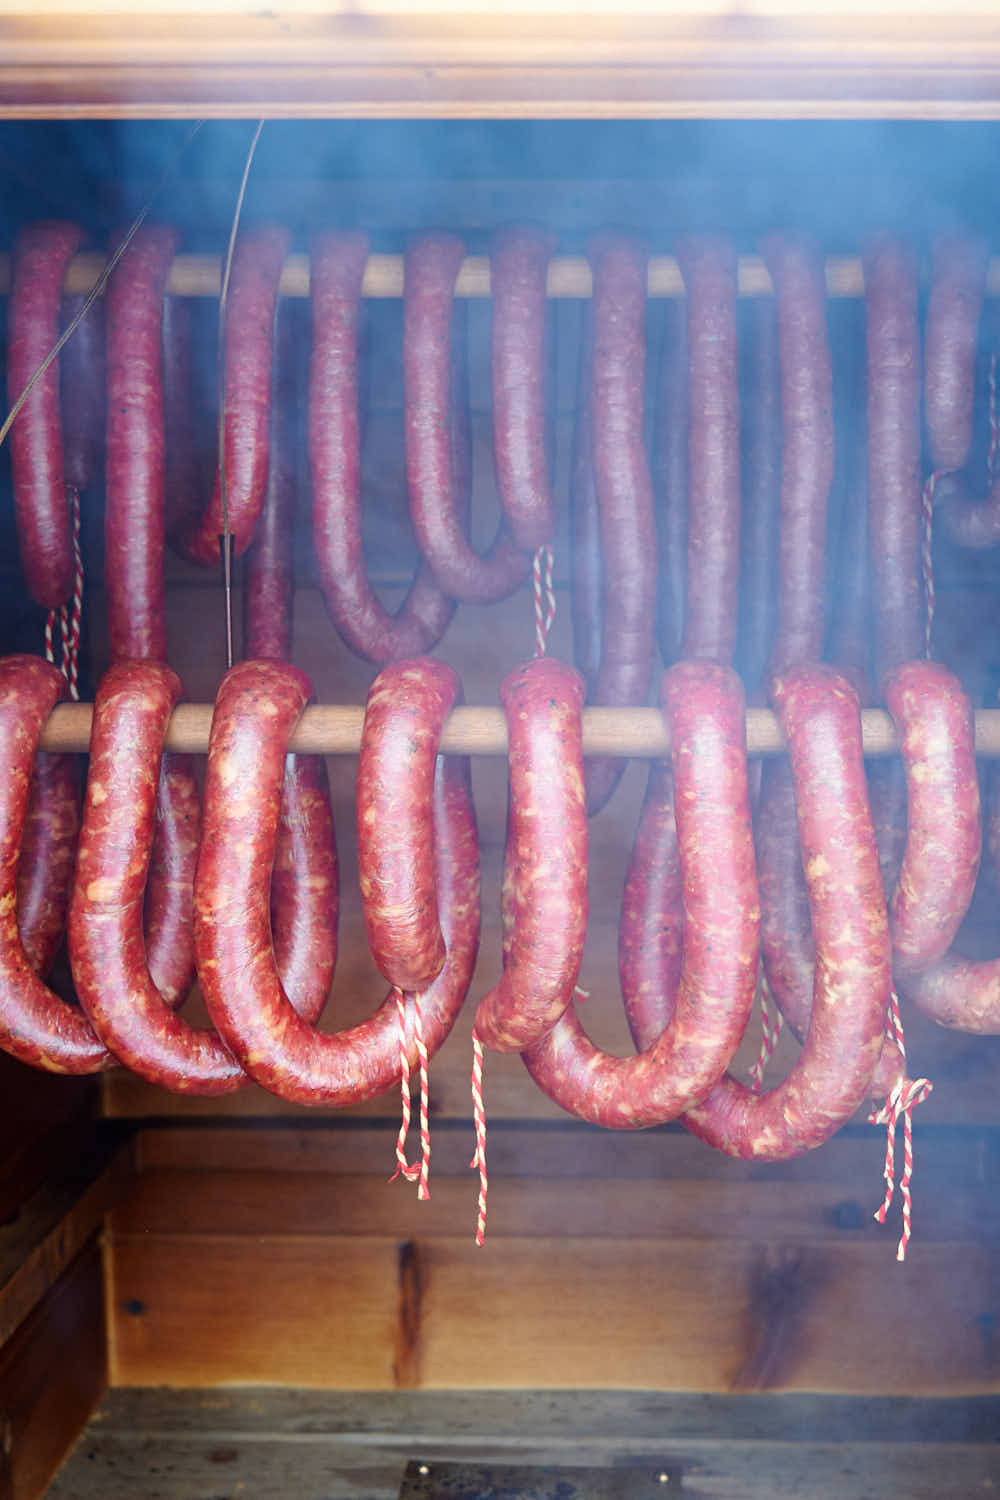 Smoking kielbasa in the smokehouse. Smoke coming out of the open door.